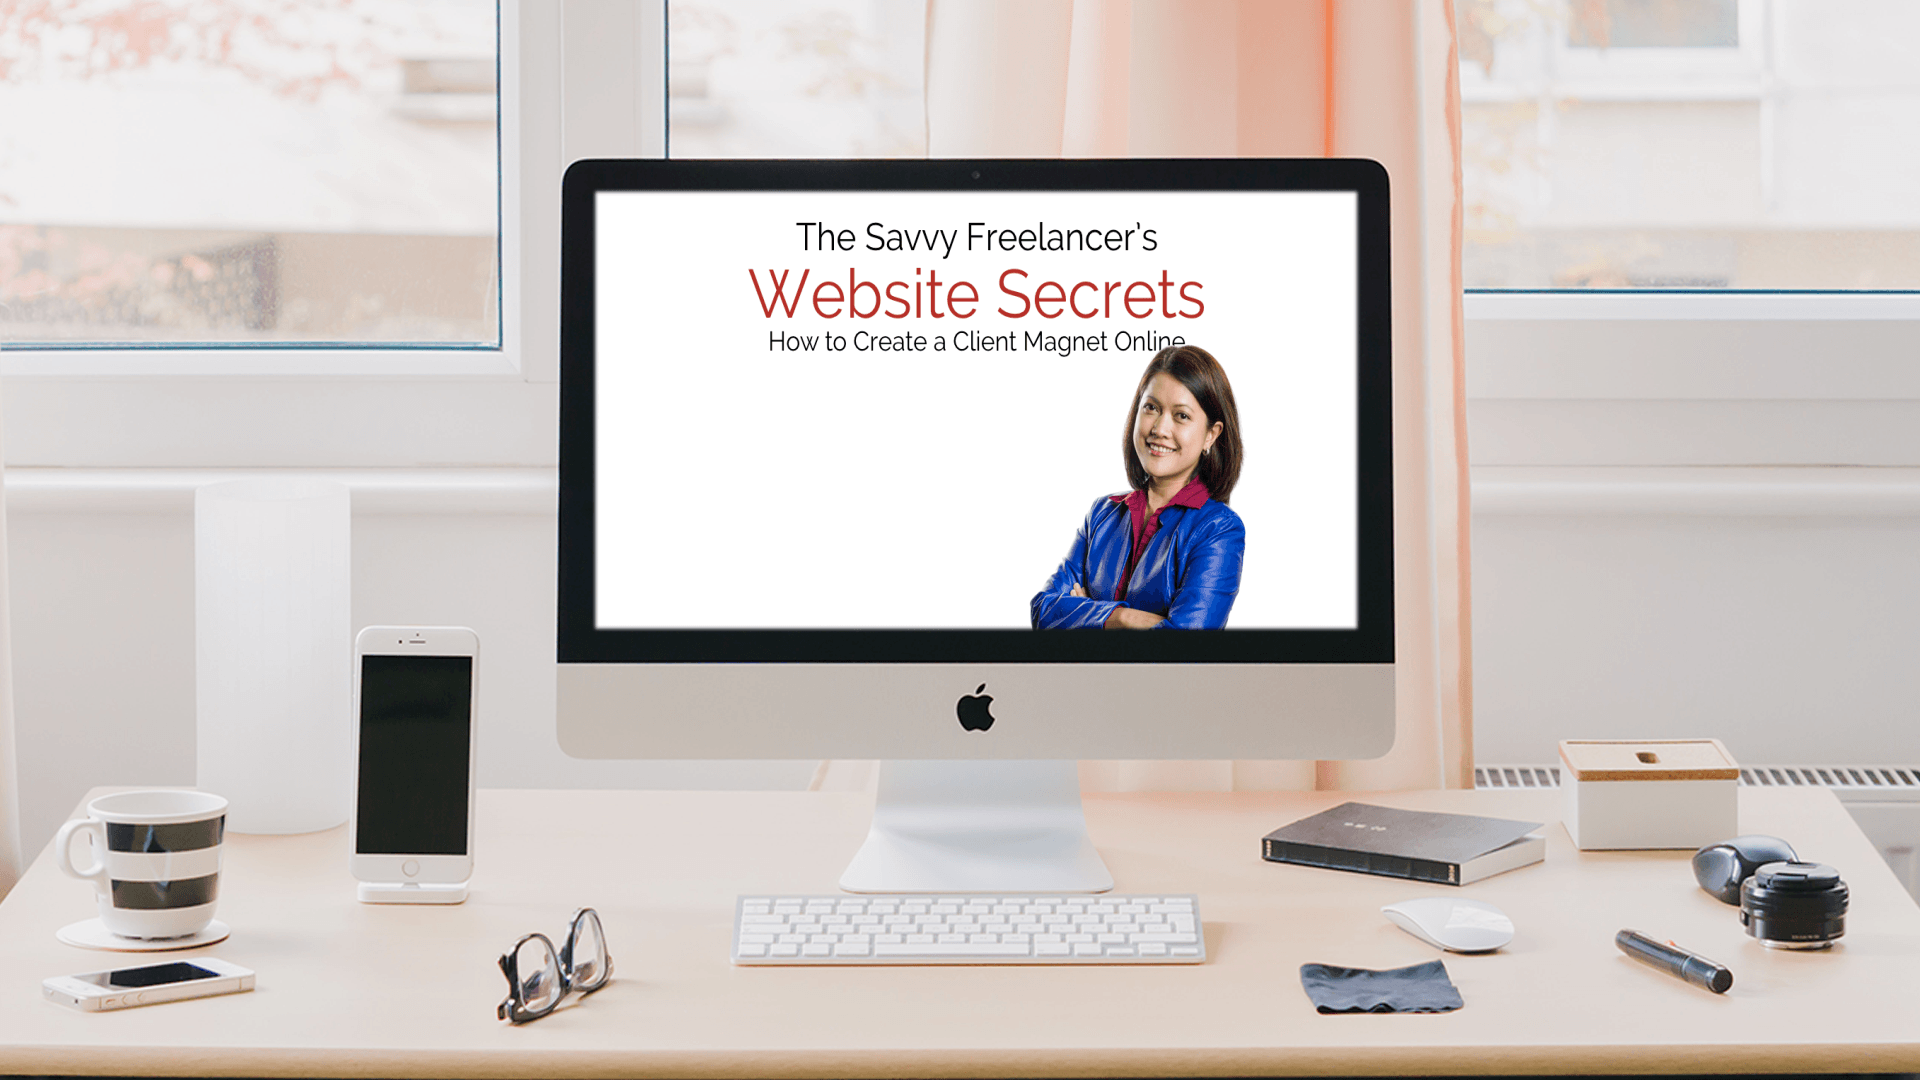 The Savvy Freelancer's Website Secrets